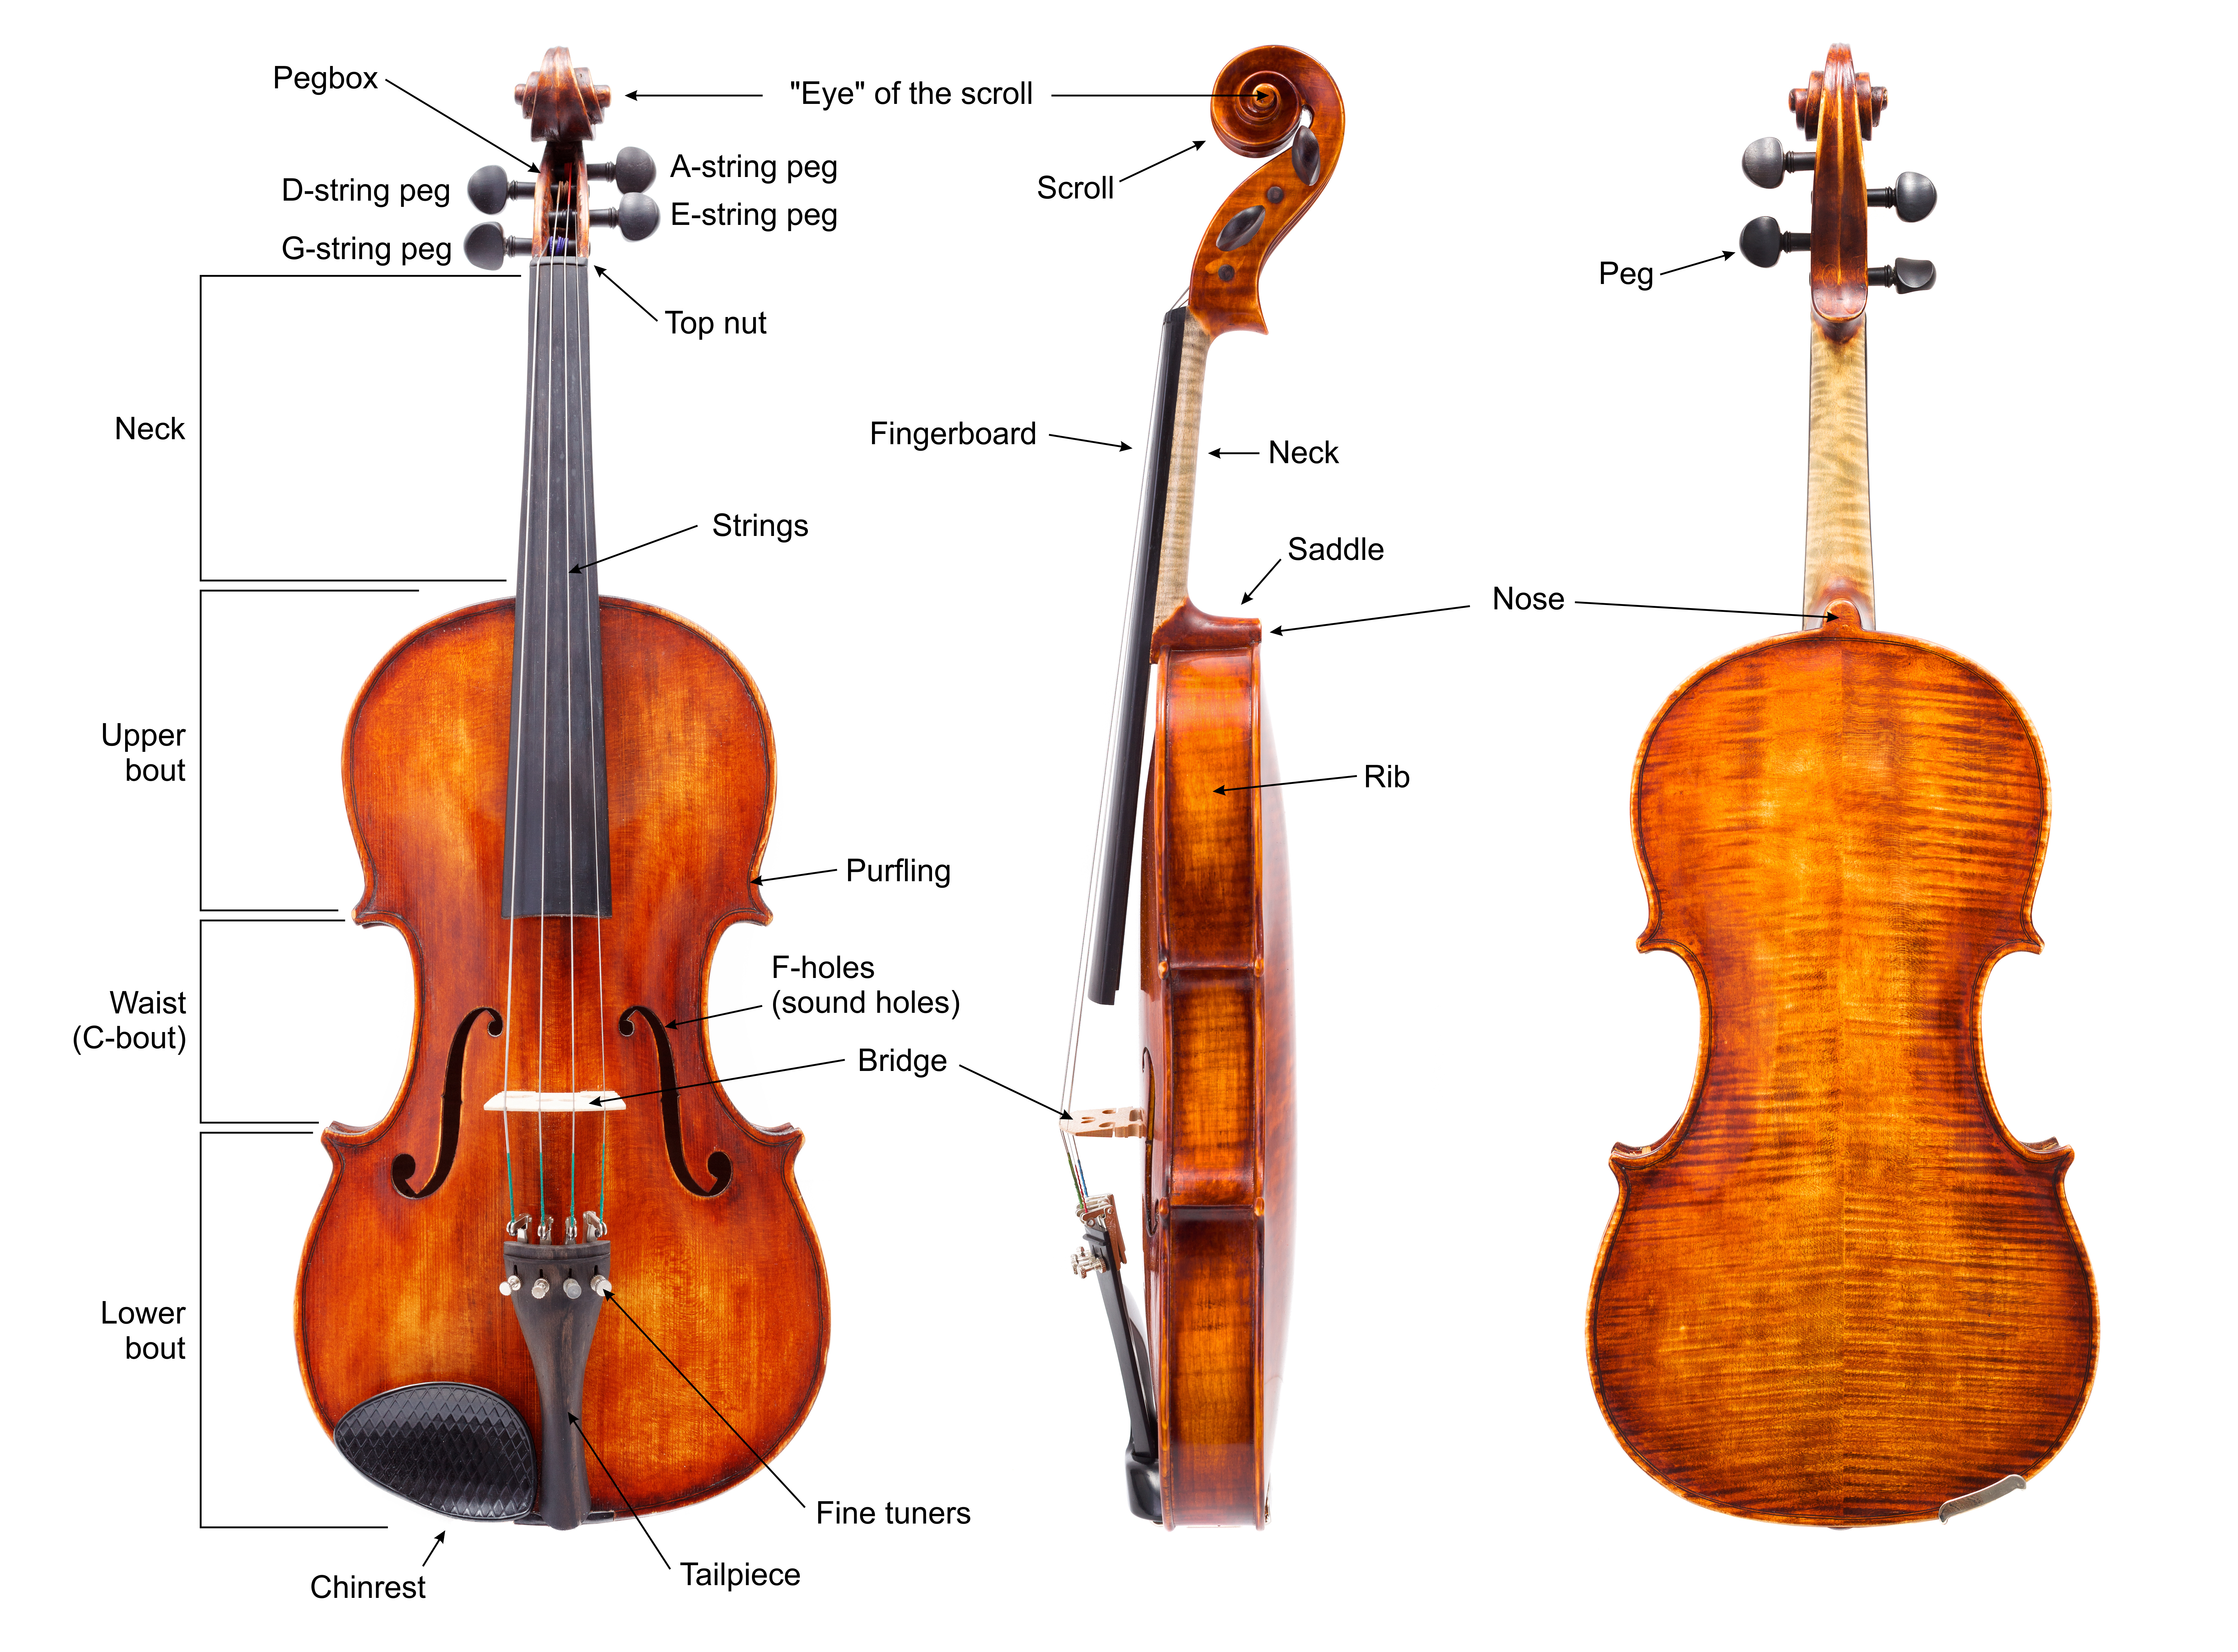 Anatomy of a violin with English labels